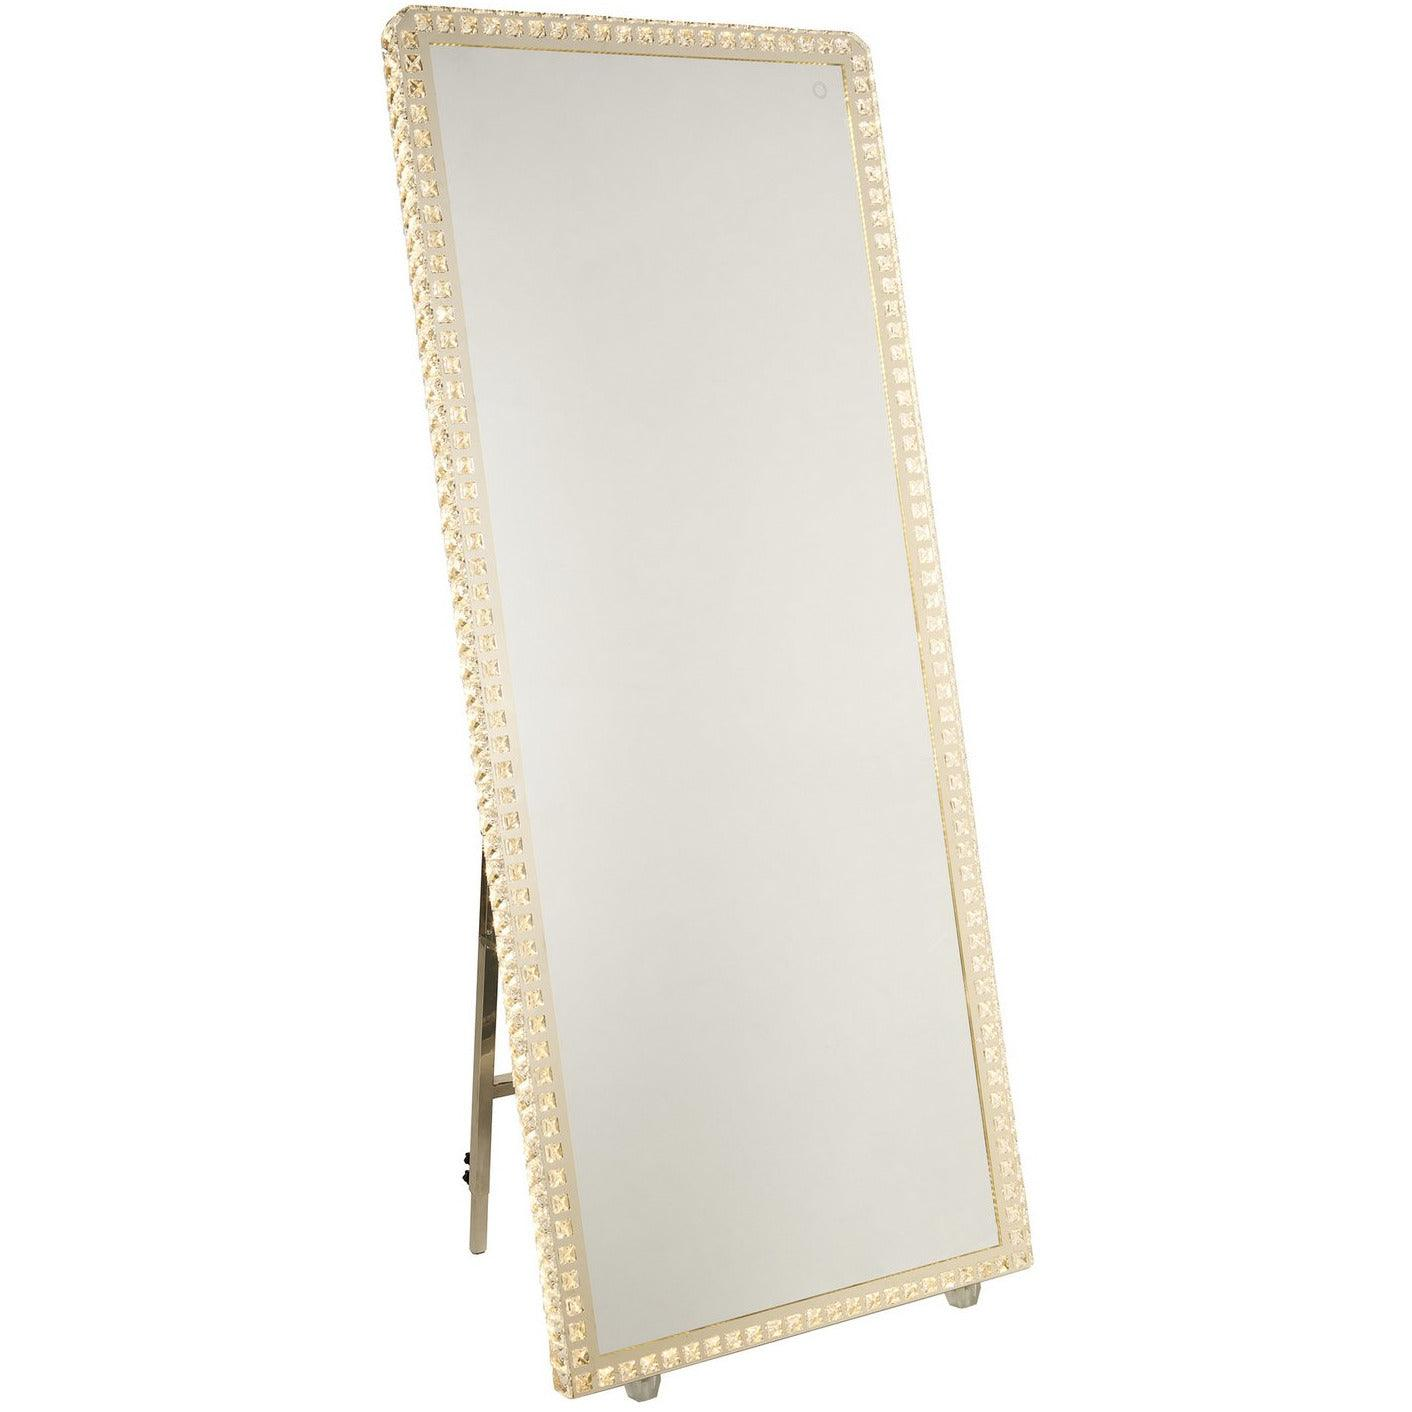 Artcraft Lighting - AM309 - LED Mirror - Reflections - Crystal